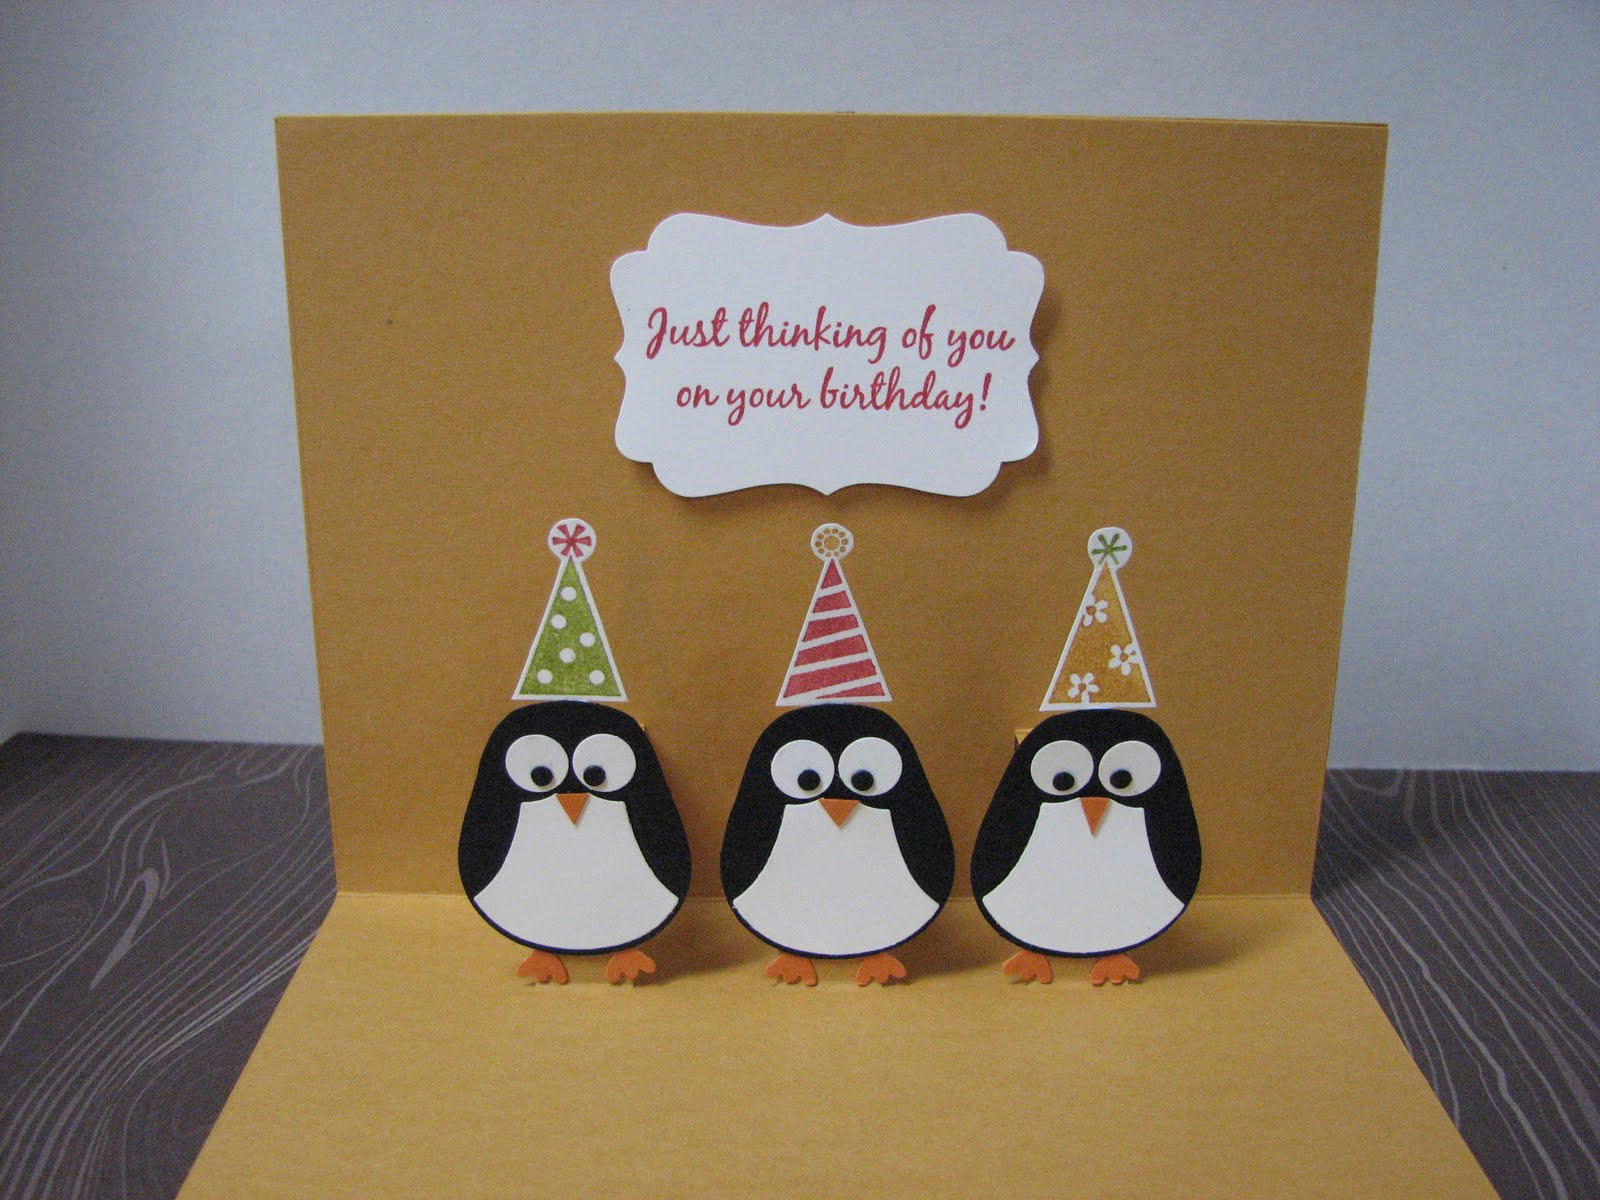 Birthday Card Ideas For Best Friend Funny 95 Birthday Cards Designs For Friends The Collection Of Beautiful